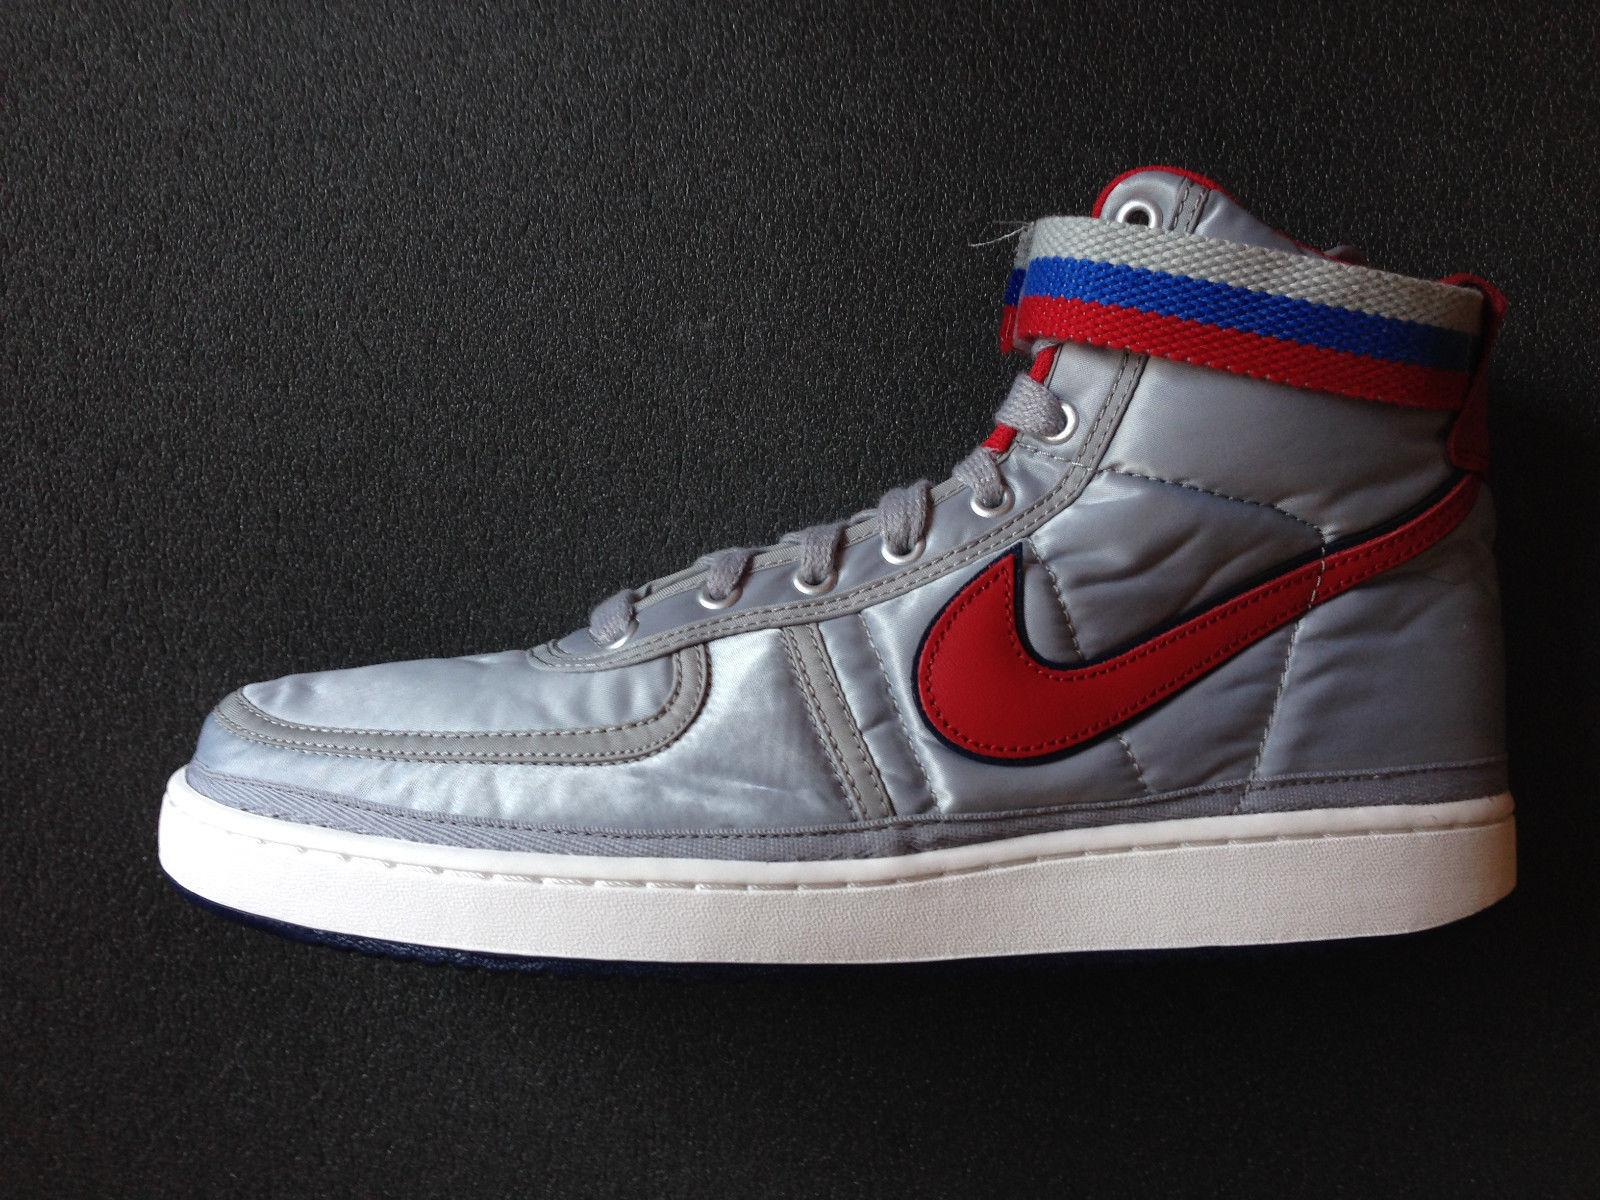 NIKE Vandal HIGH Supreme(AH8652-001)